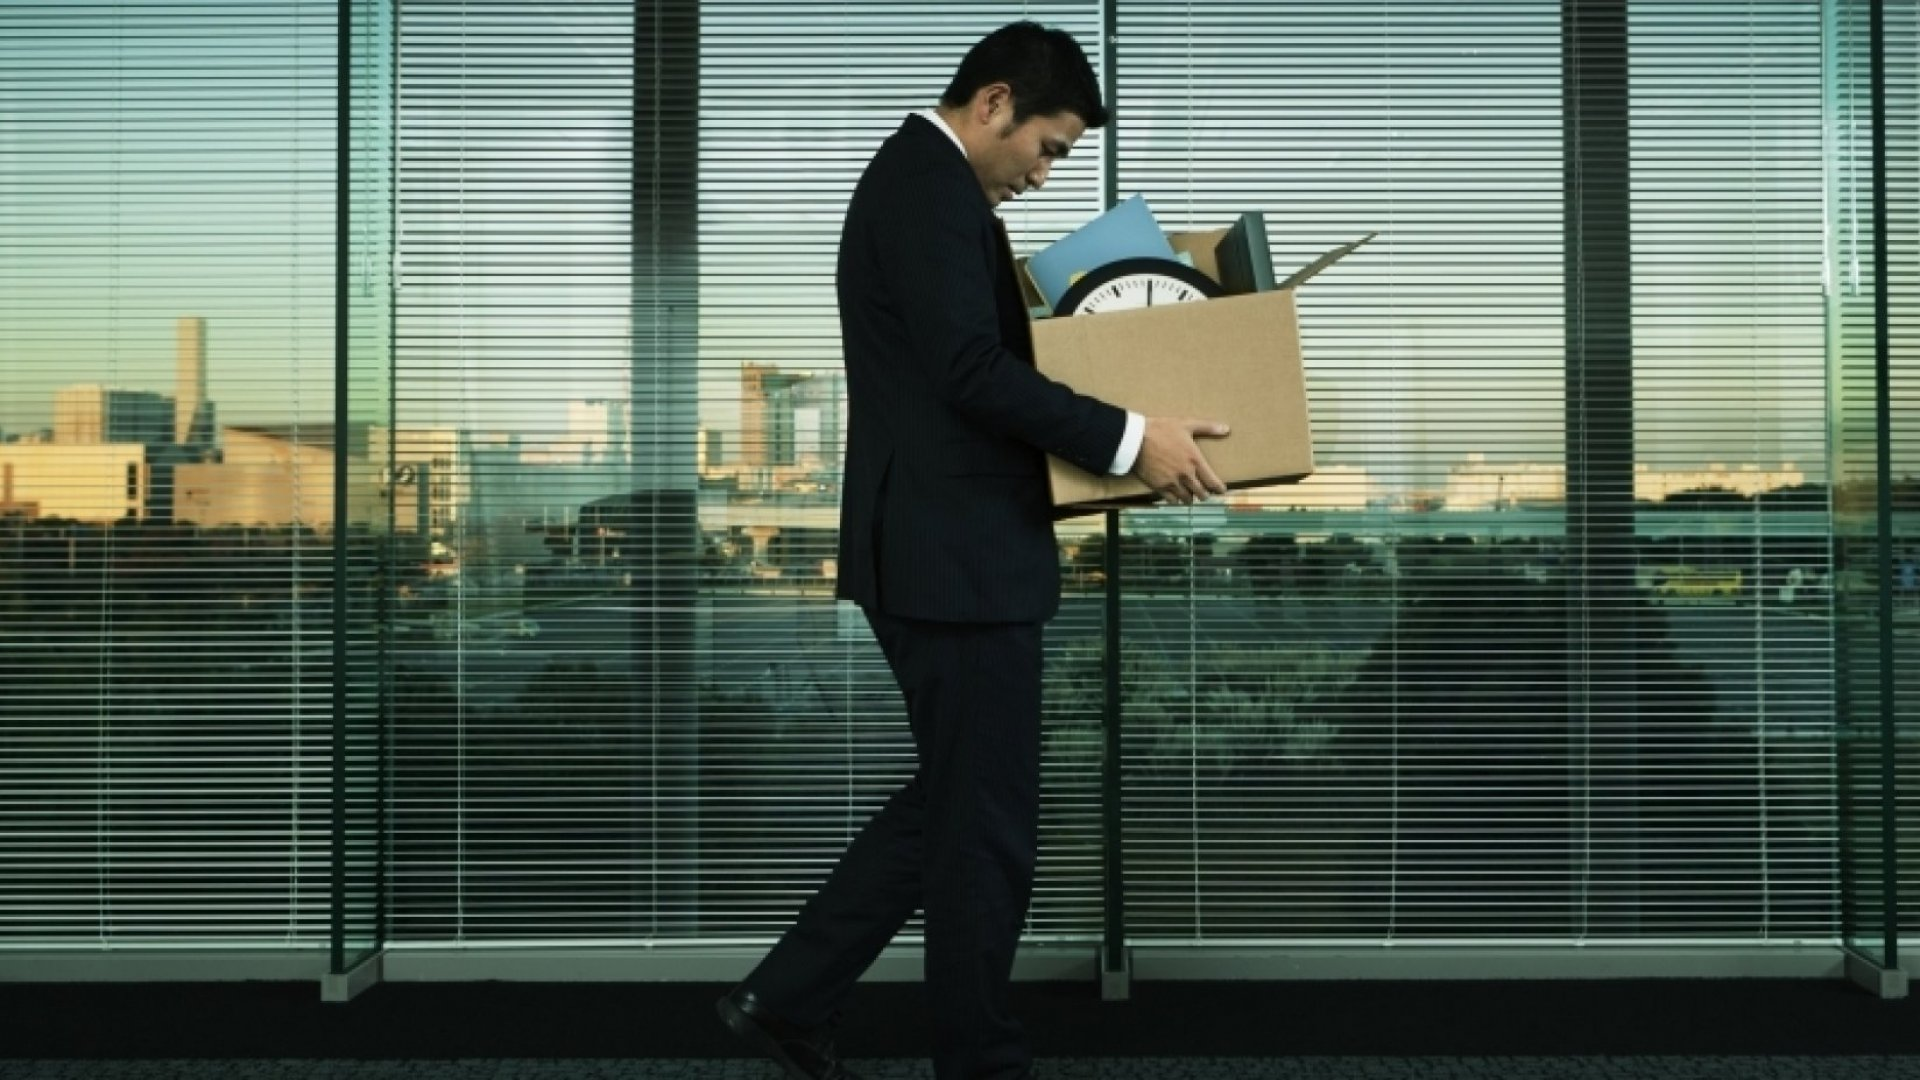 Reasons You Could Get Fired (and How to Stop It)